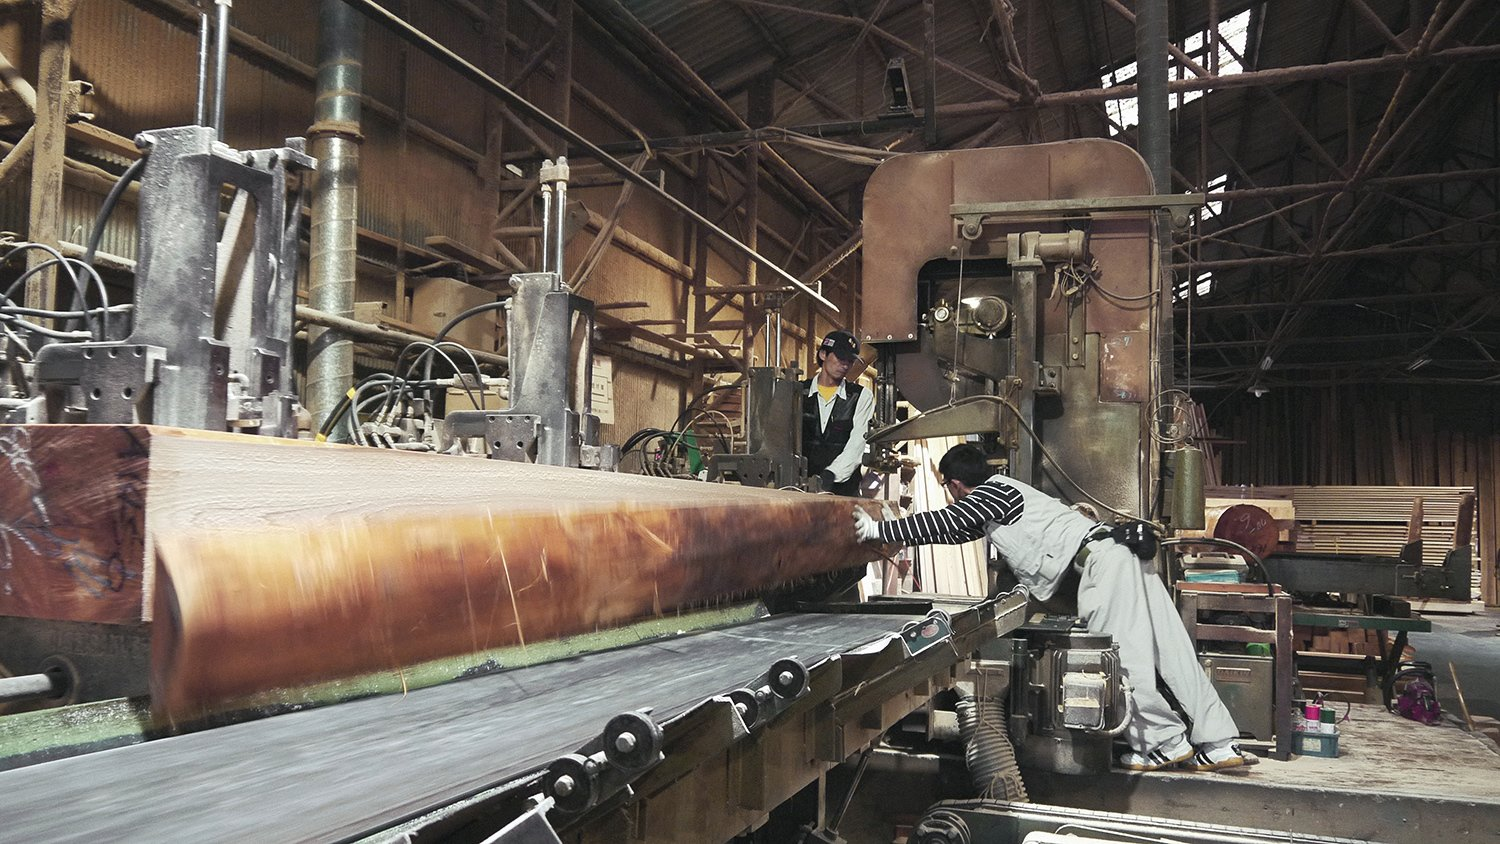 Long beams are prepared by workers in a factory, ready to be used to build Yoshino Cedar House.